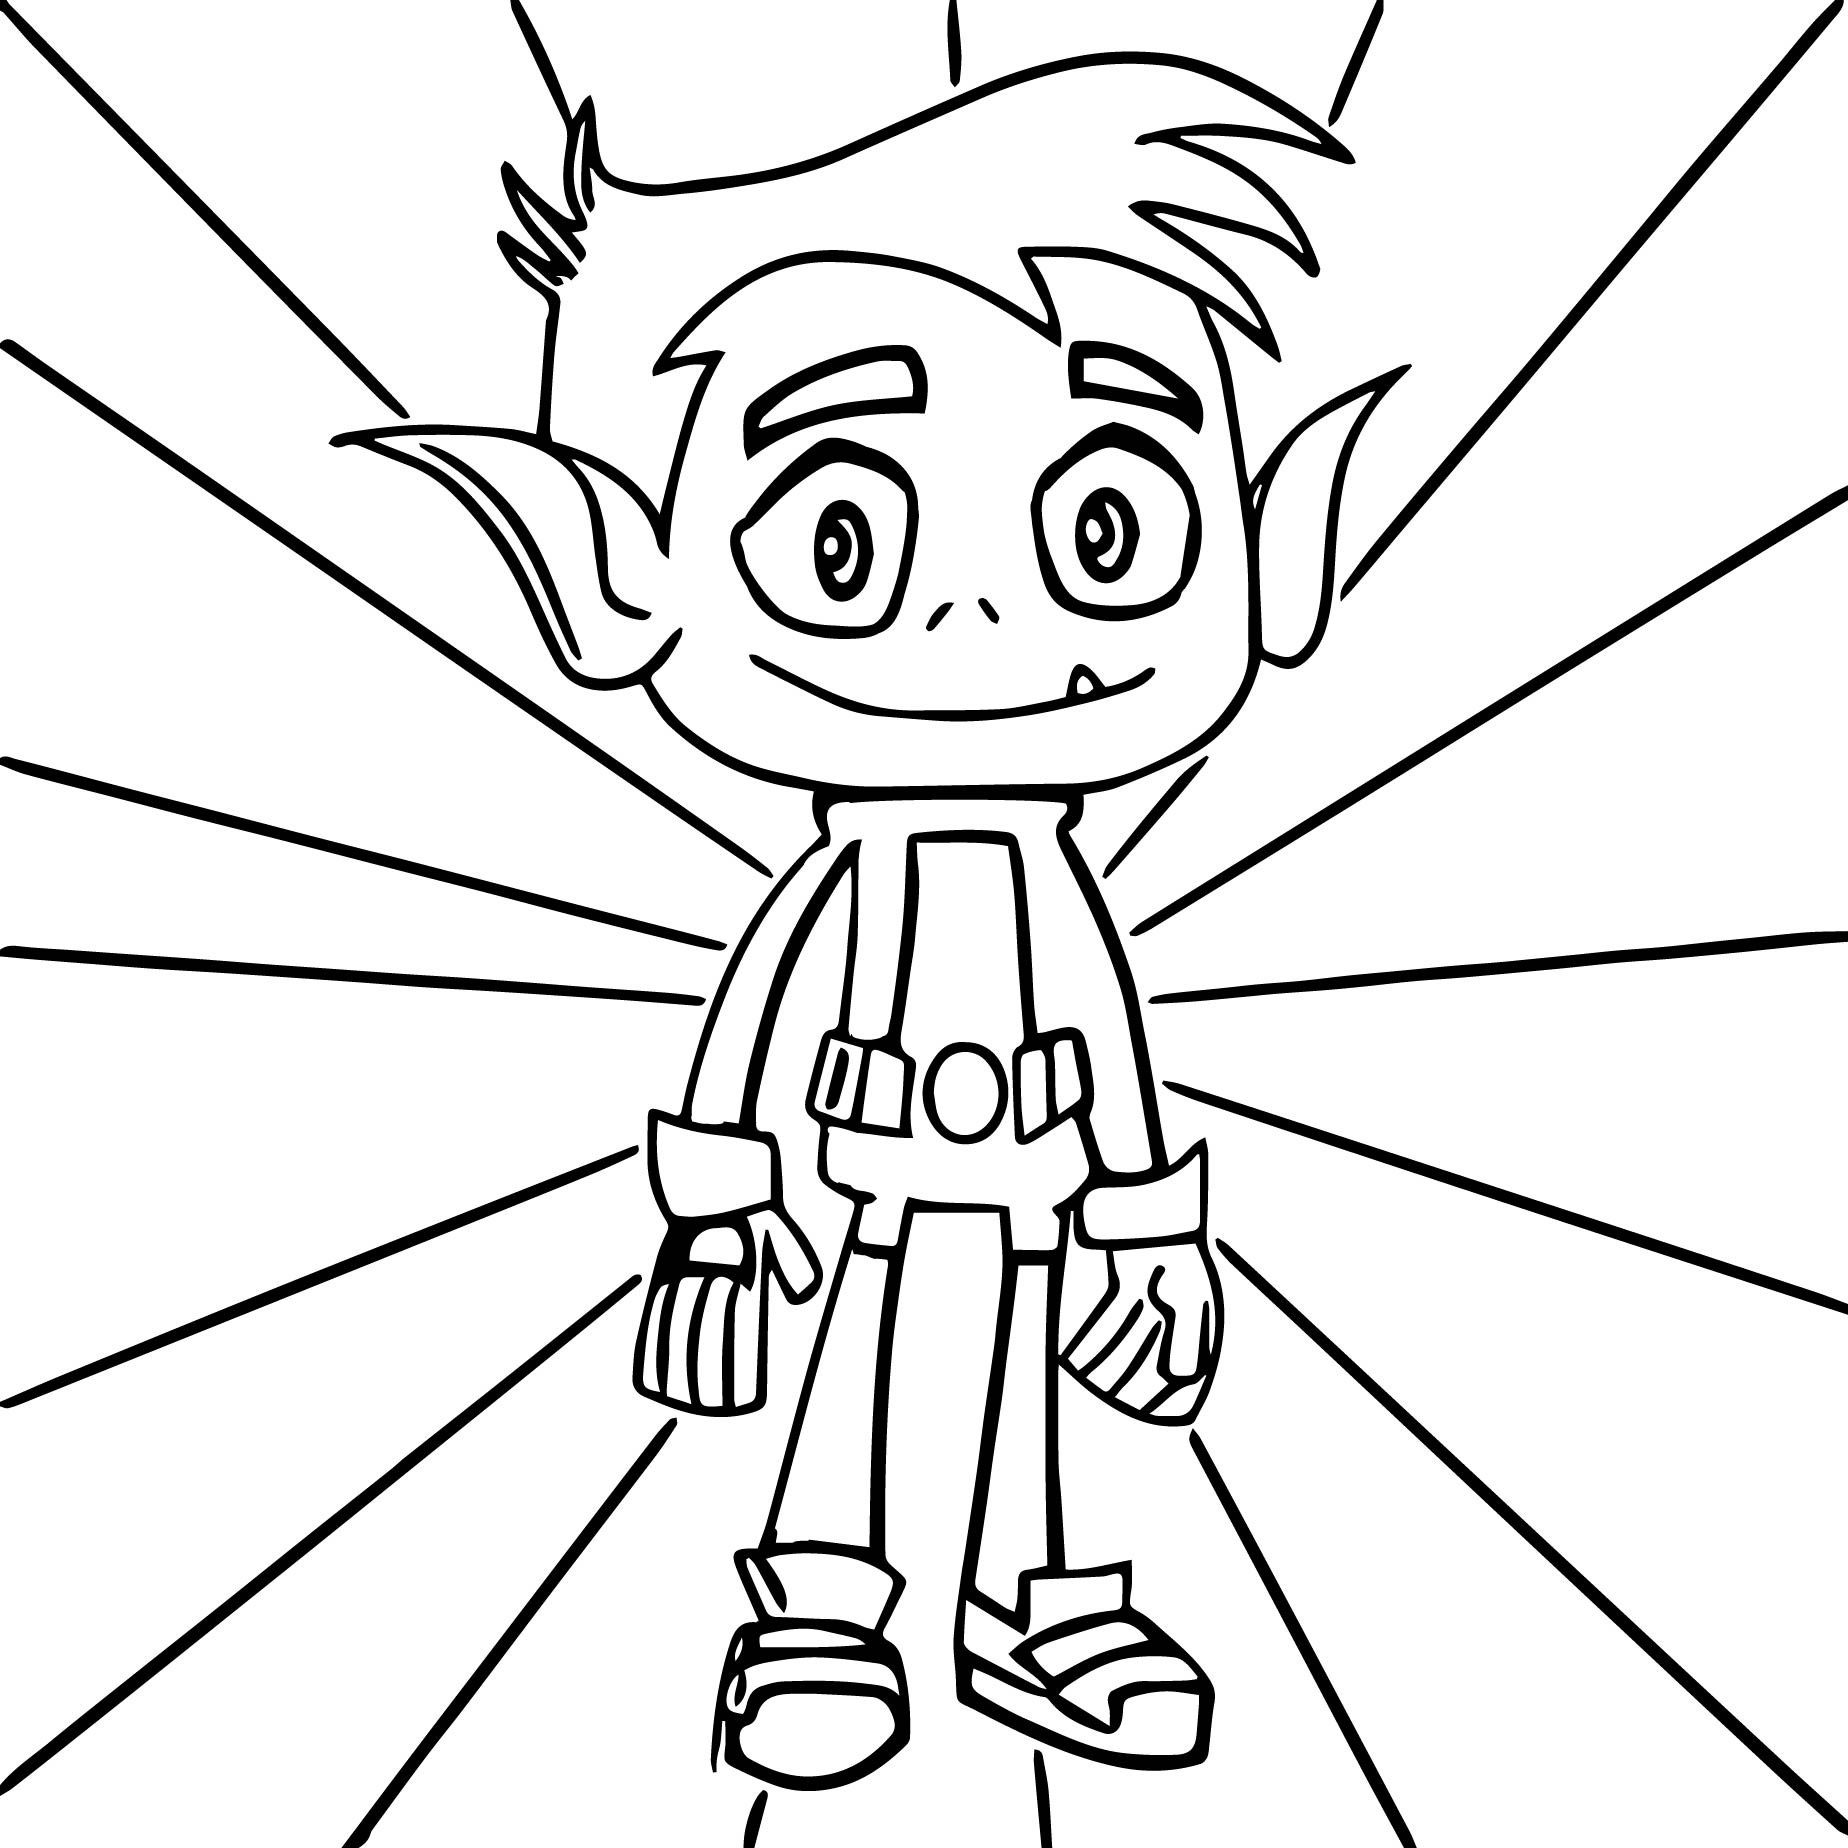 1848x1848 halloween vampire coloring pages for kids fresh halloween dracula - Vampire Coloring Pages